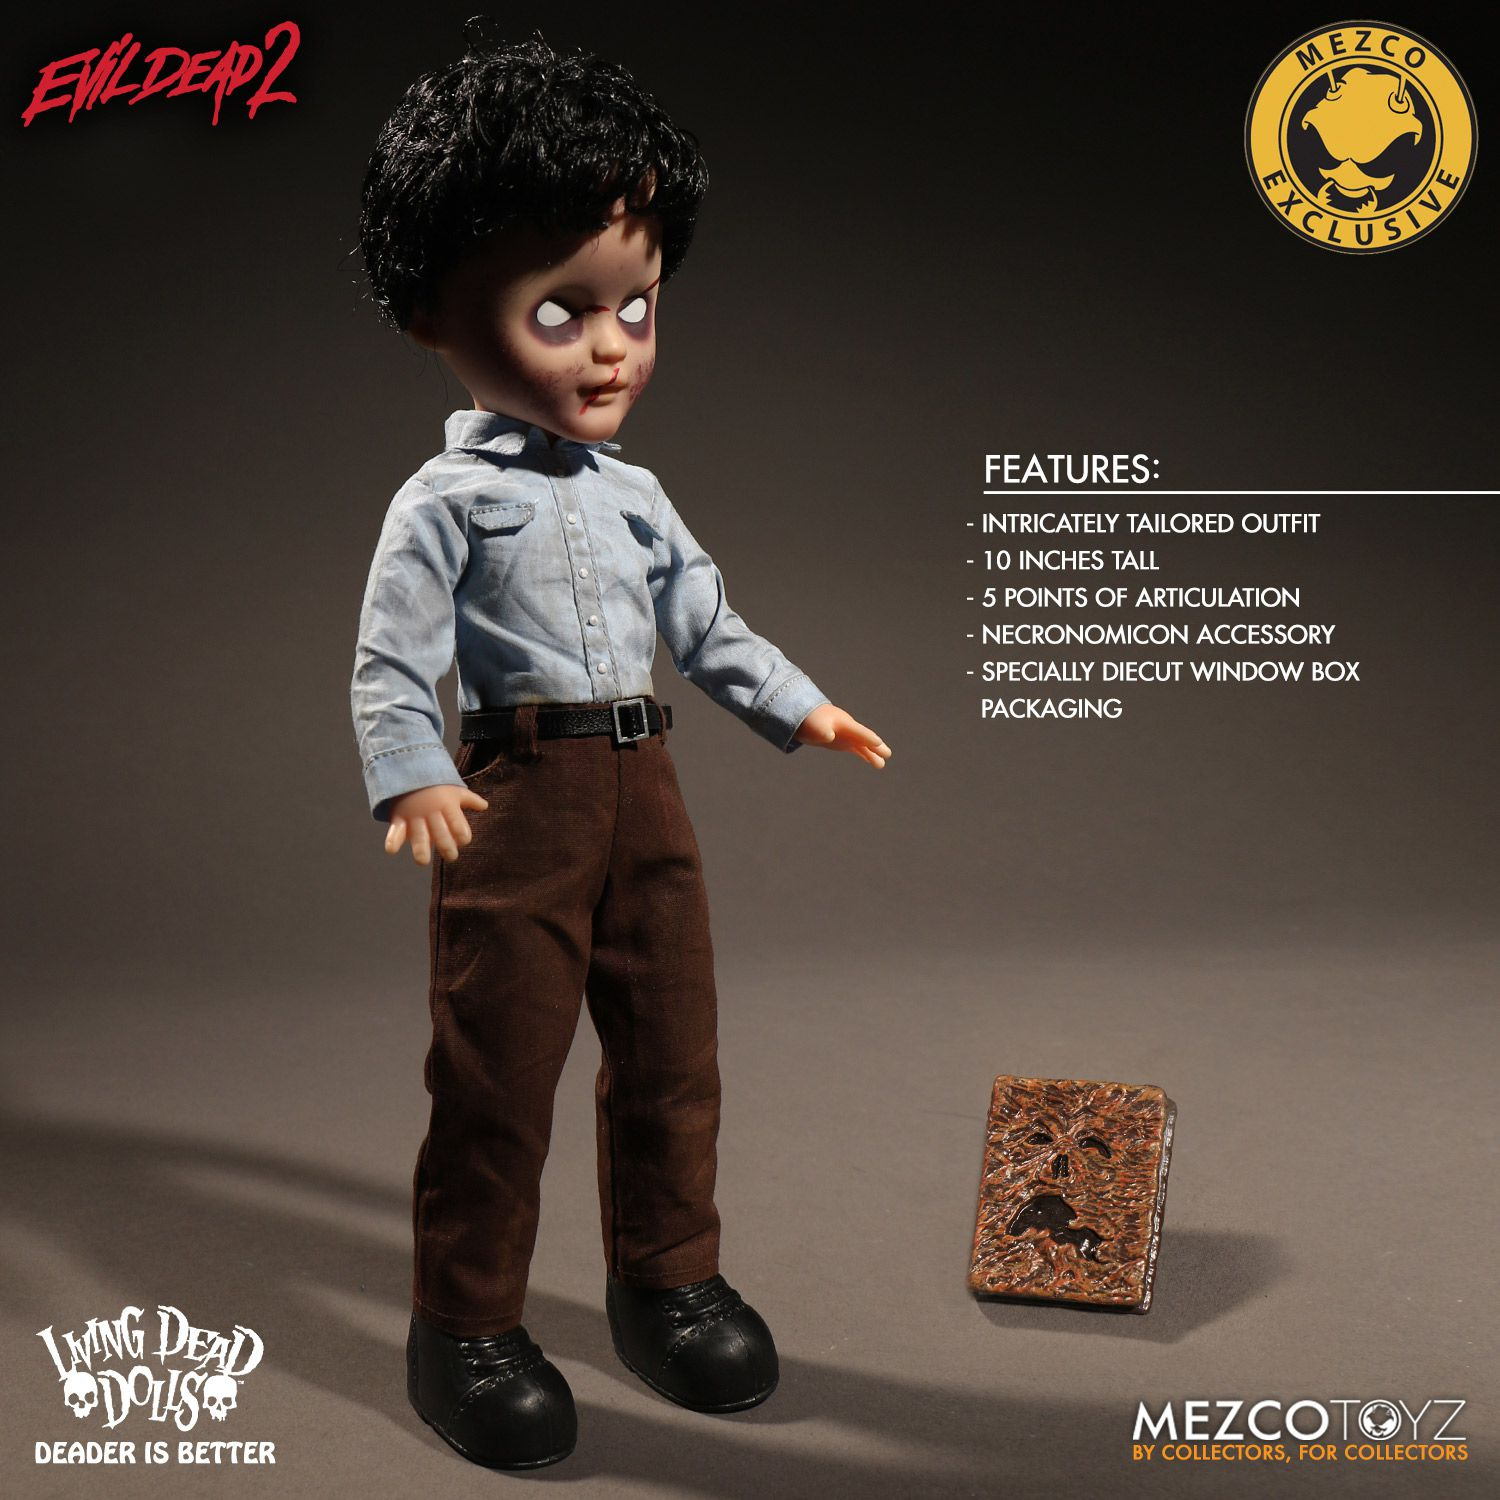 living dead dolls evil dead 2 deadite ash doll by mezco toyz